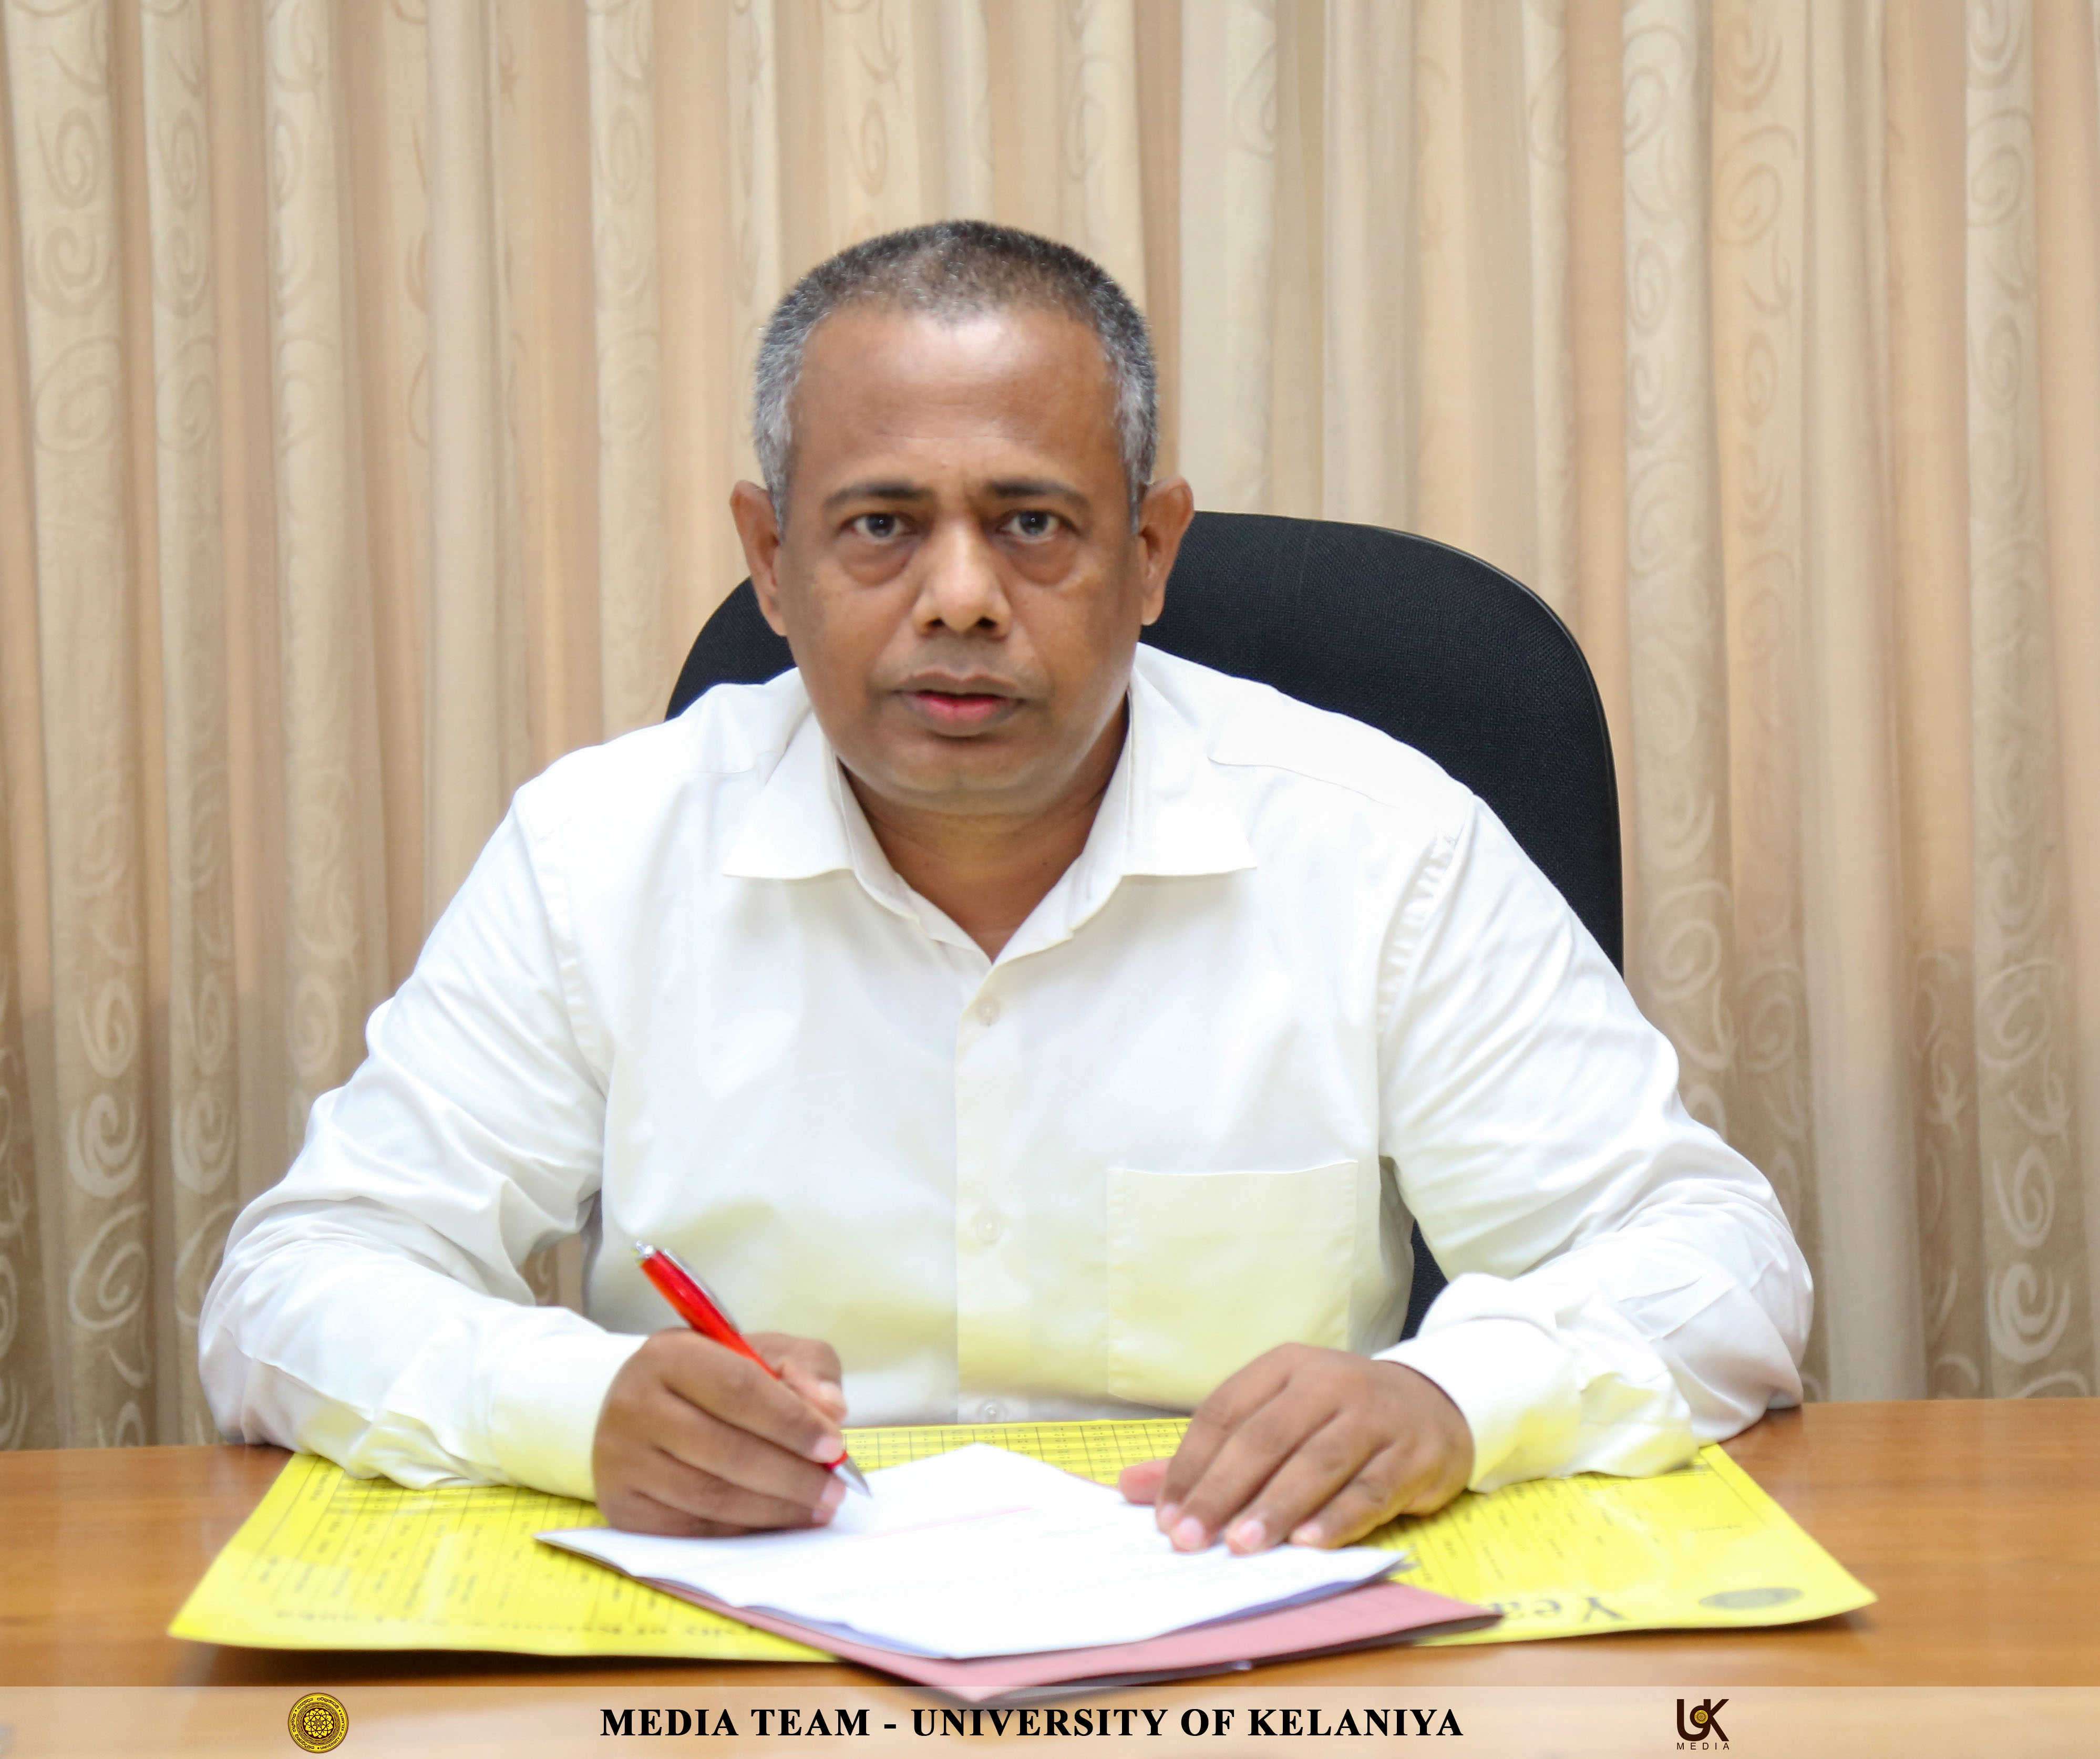 Dr. P.N.D. Fernando Reappointed as the Dean of the Faculty of Commerce and Management Studies